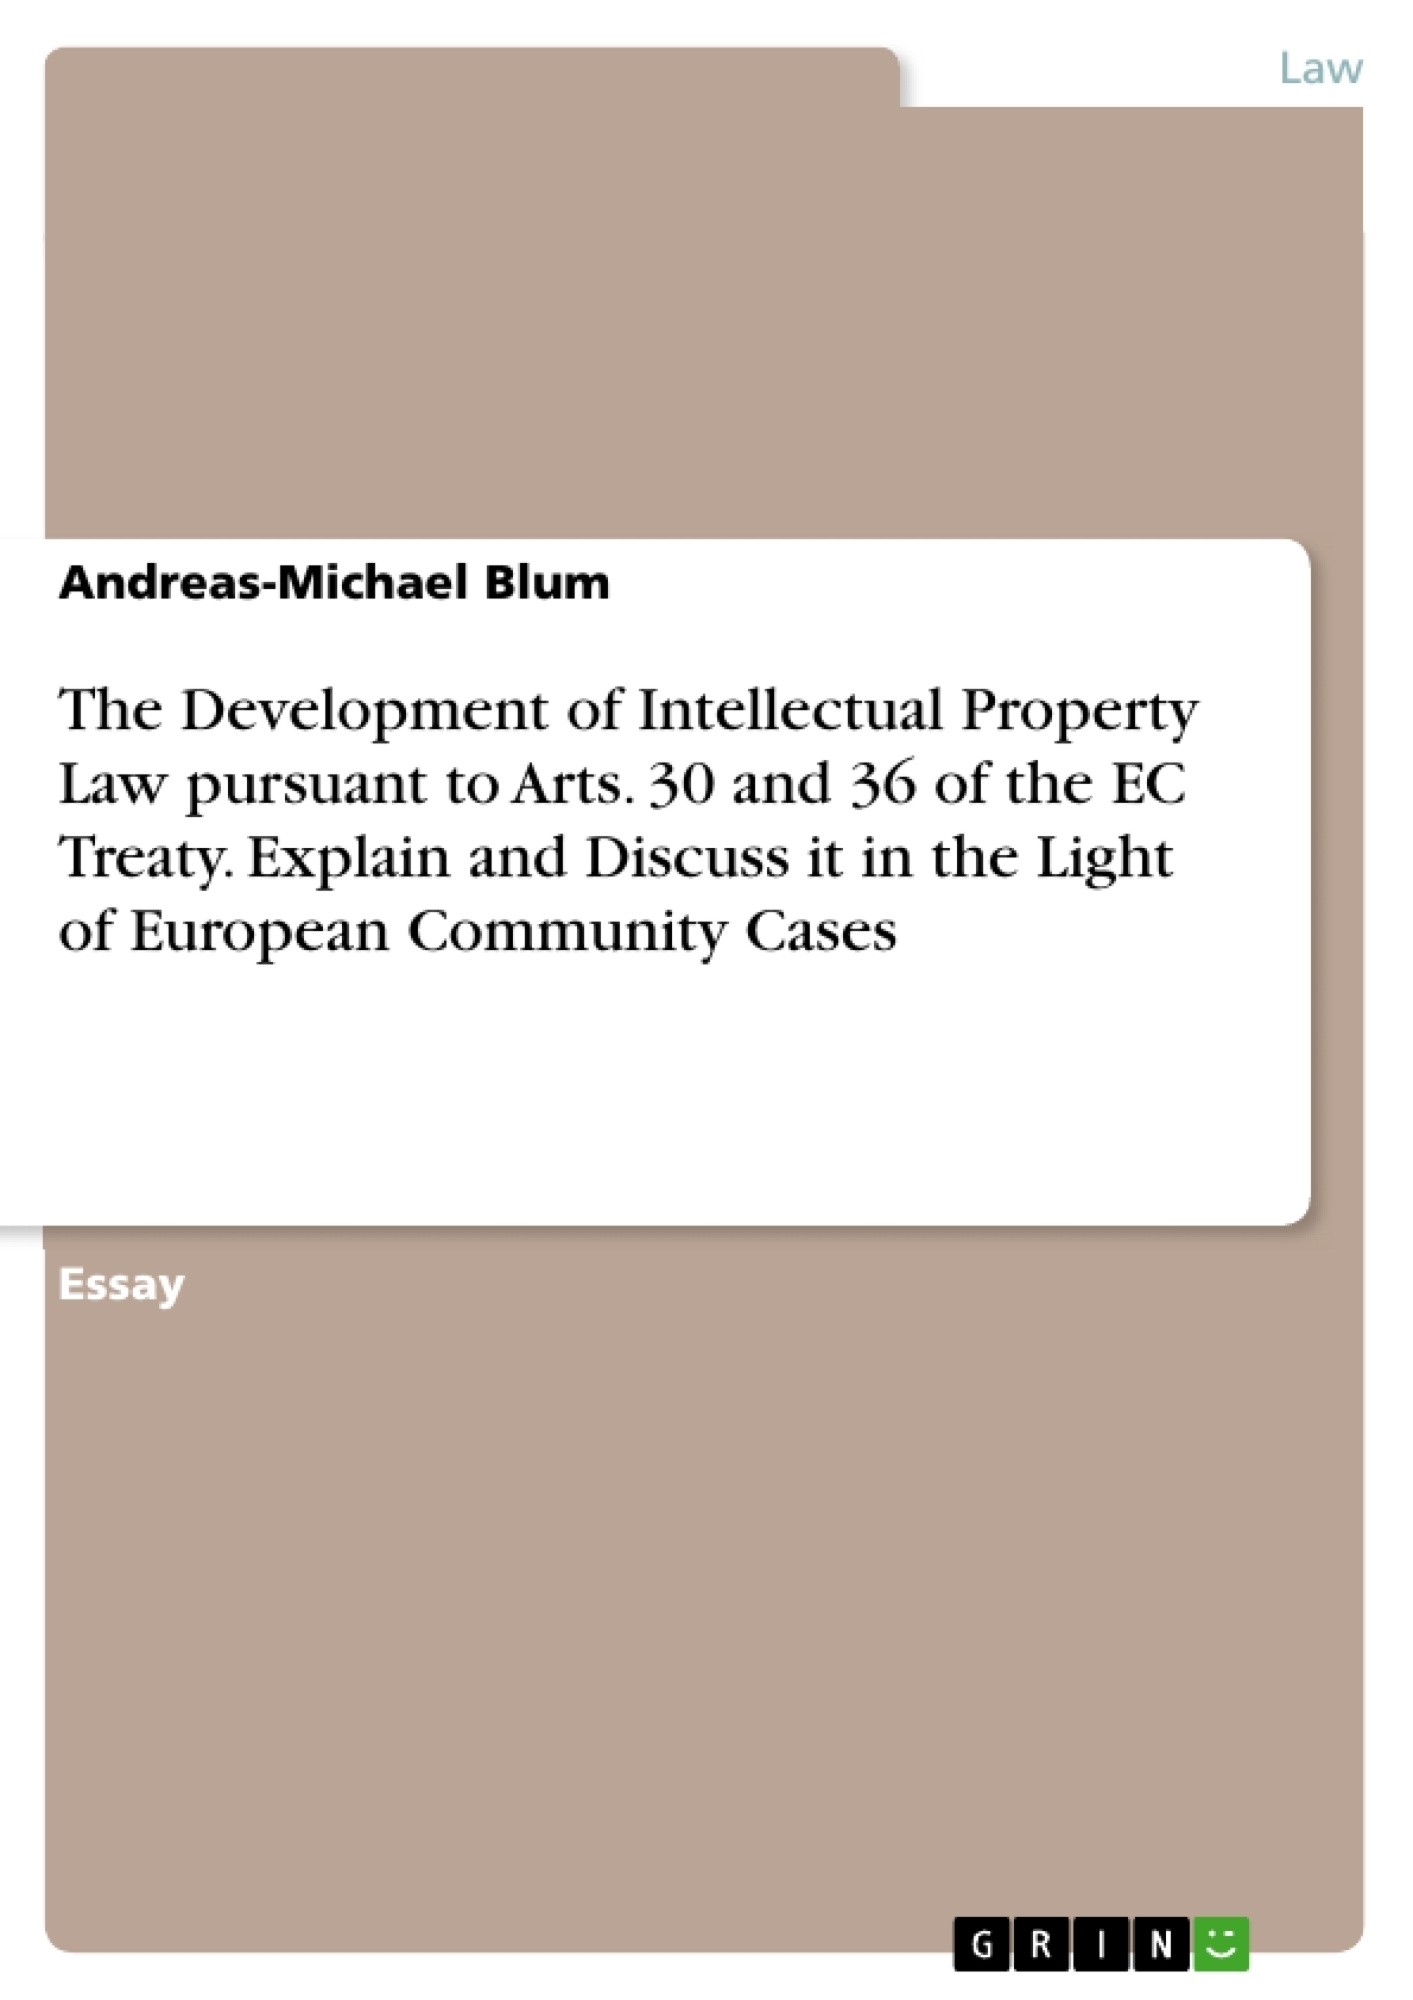 Title: The Development of Intellectual Property Law pursuant to Arts. 30 and 36 of the EC Treaty. Explain and Discuss it in the Light of European Community Cases